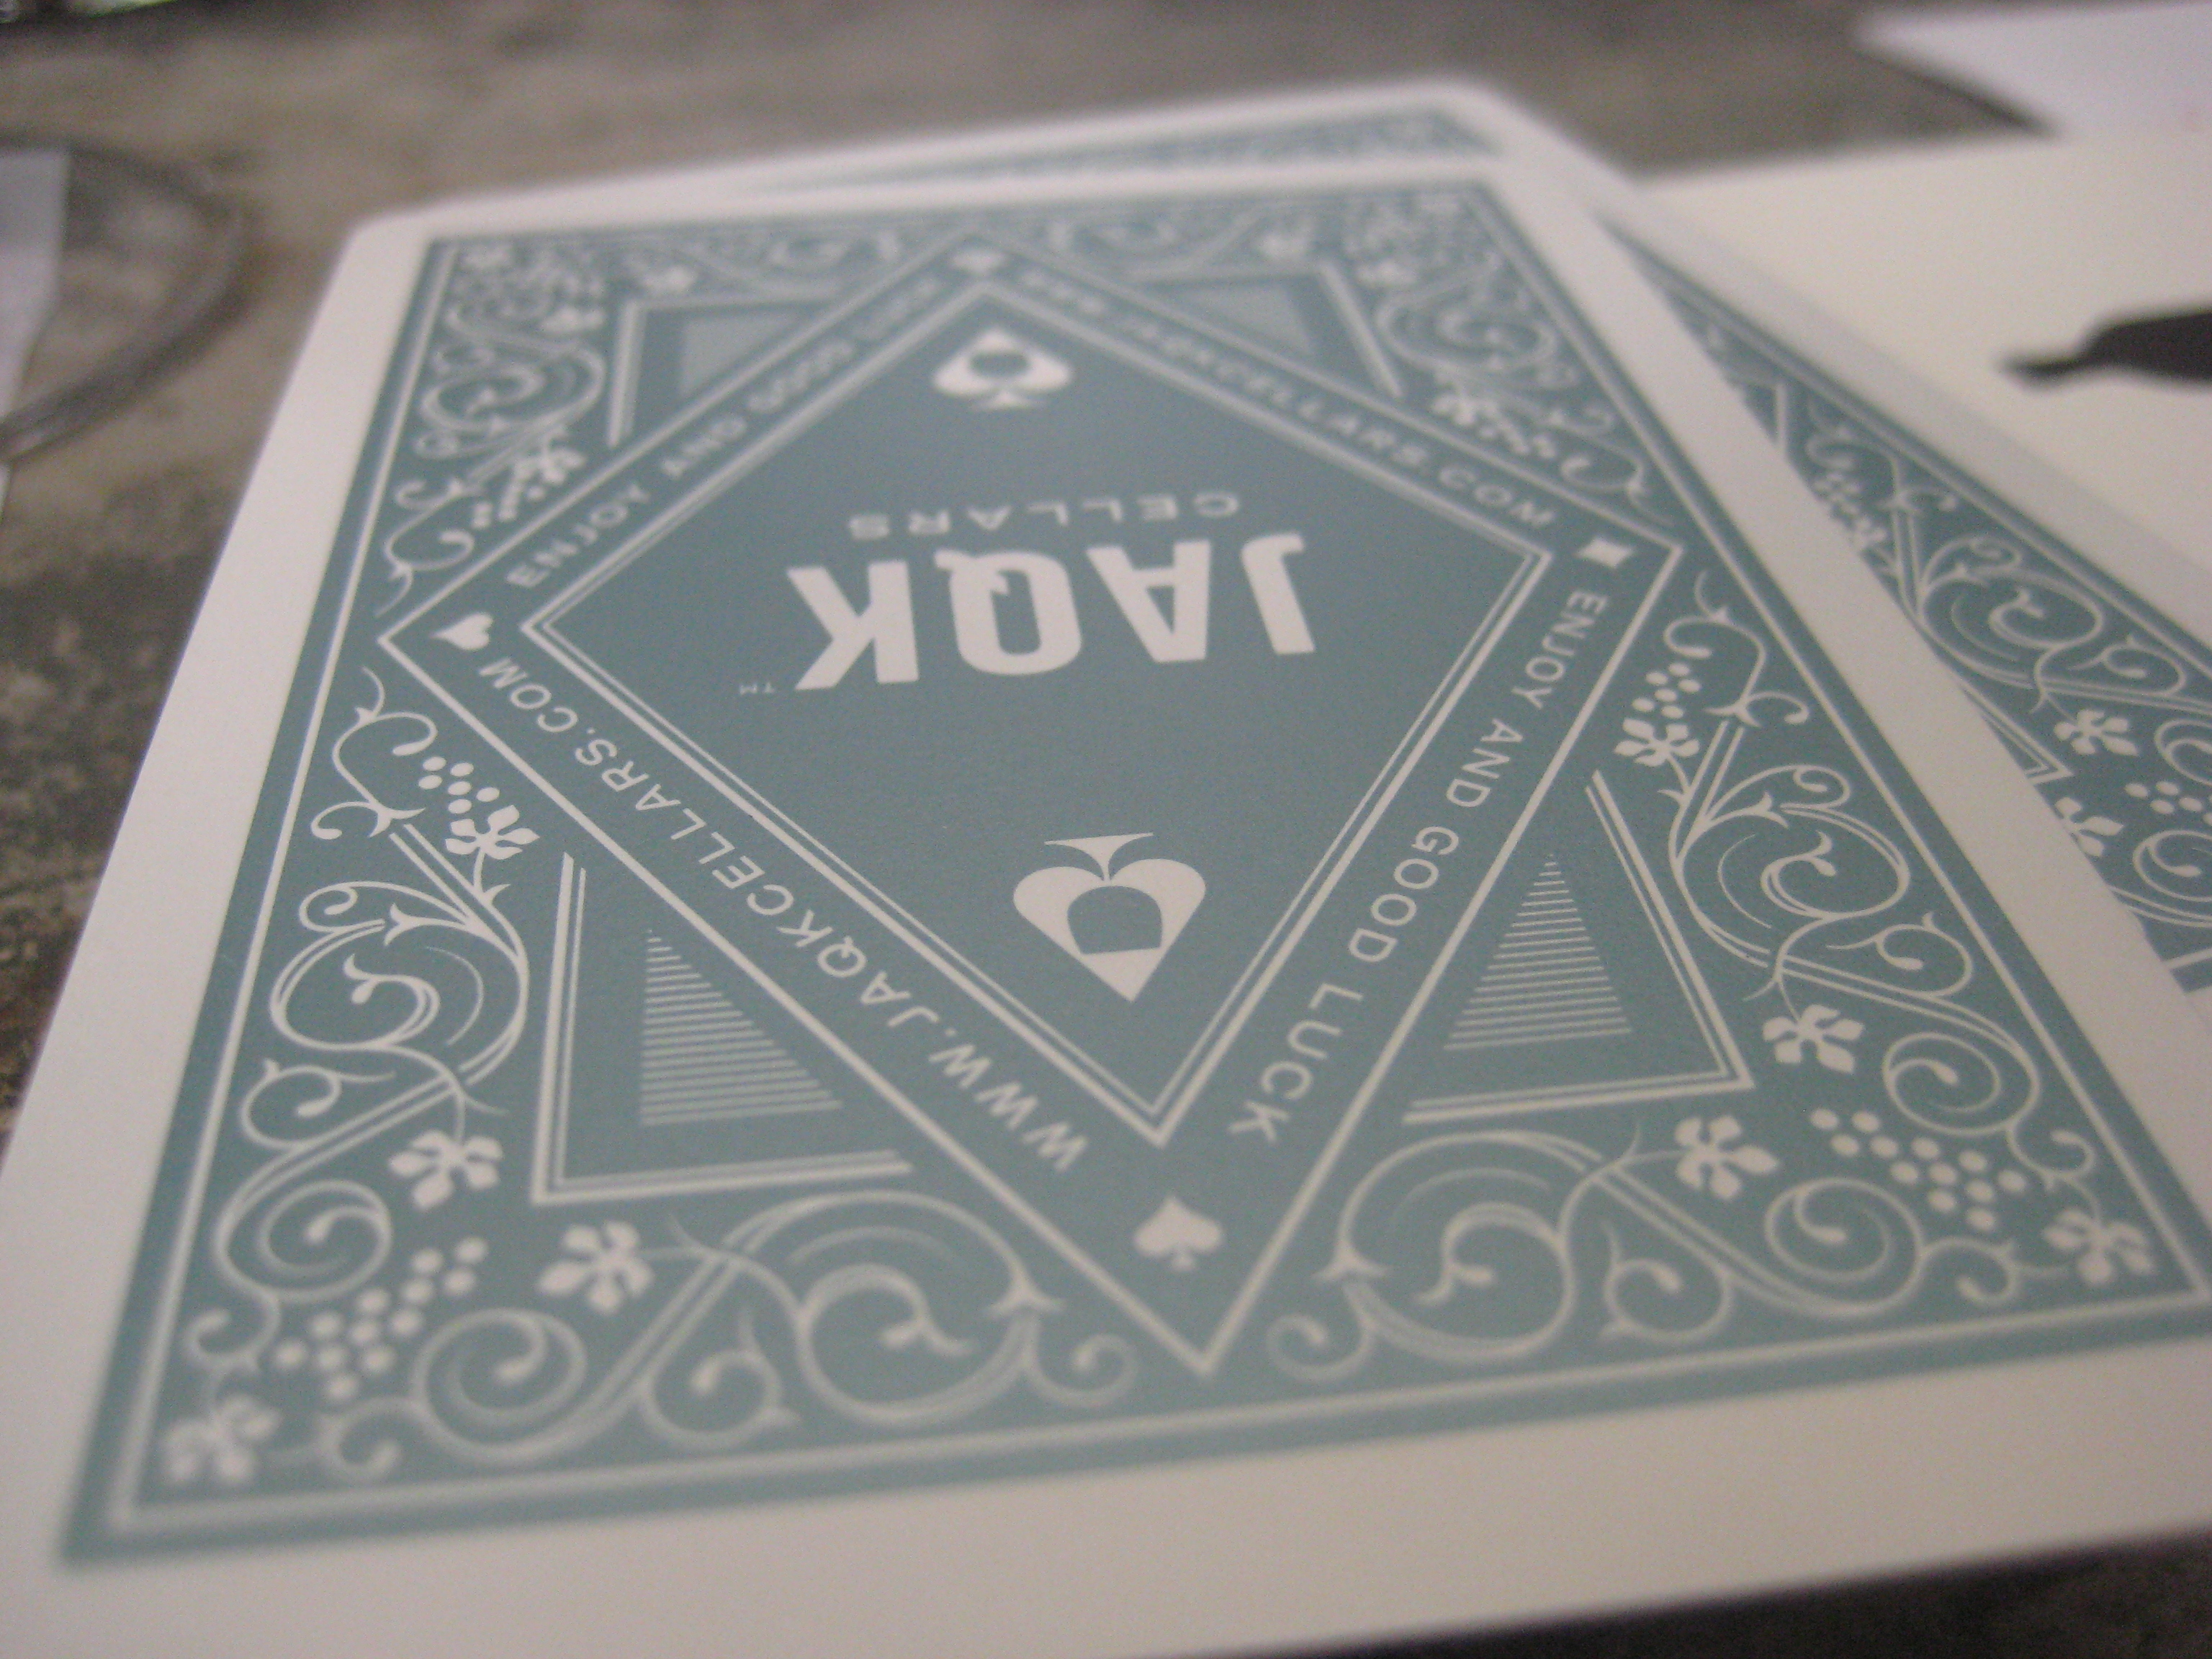 The playing cards out of their deck.